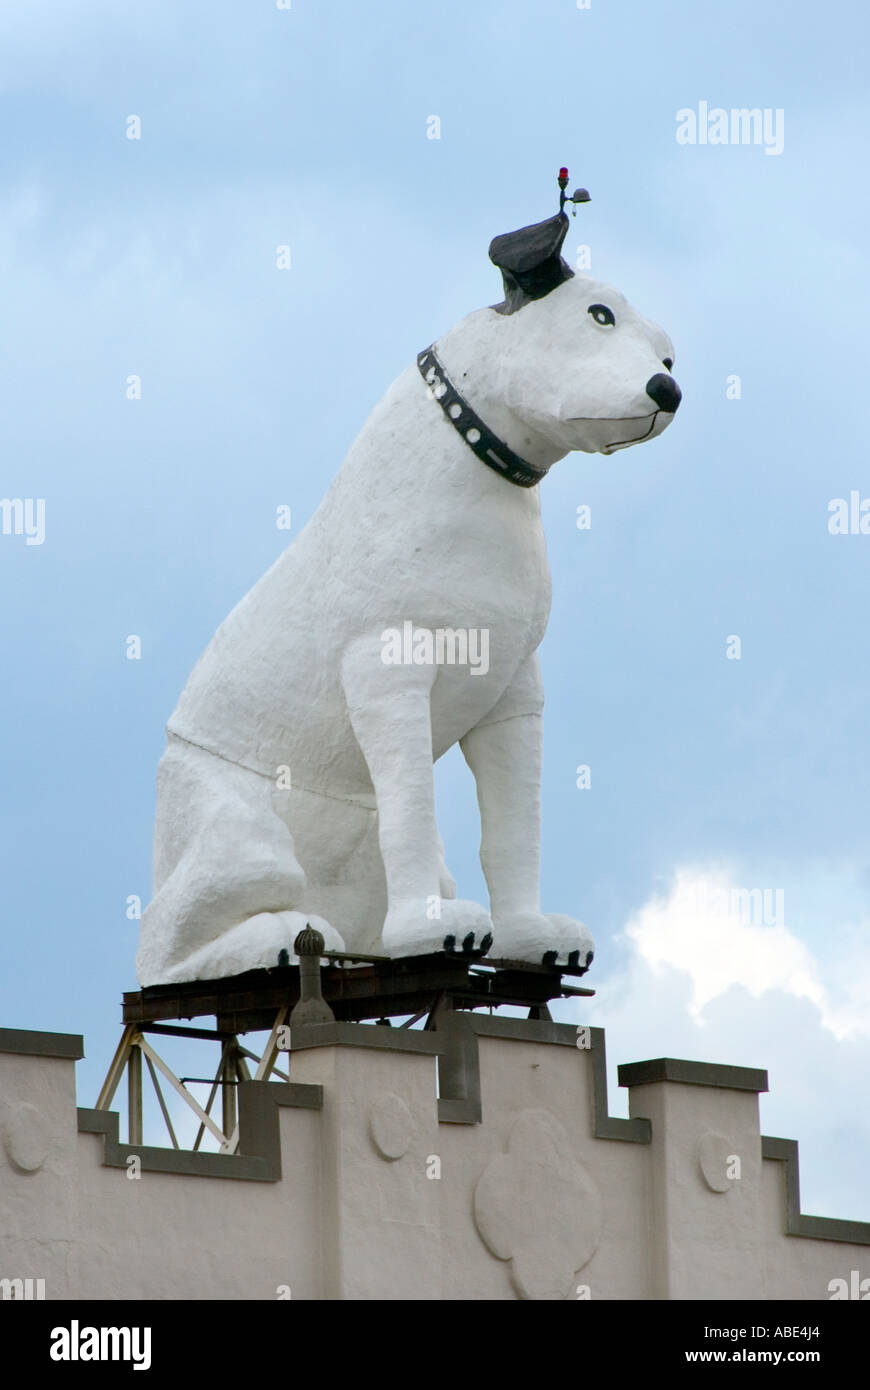 Nipper the RCA dog on top of a warehouse in downtown Albany New York - Stock Image